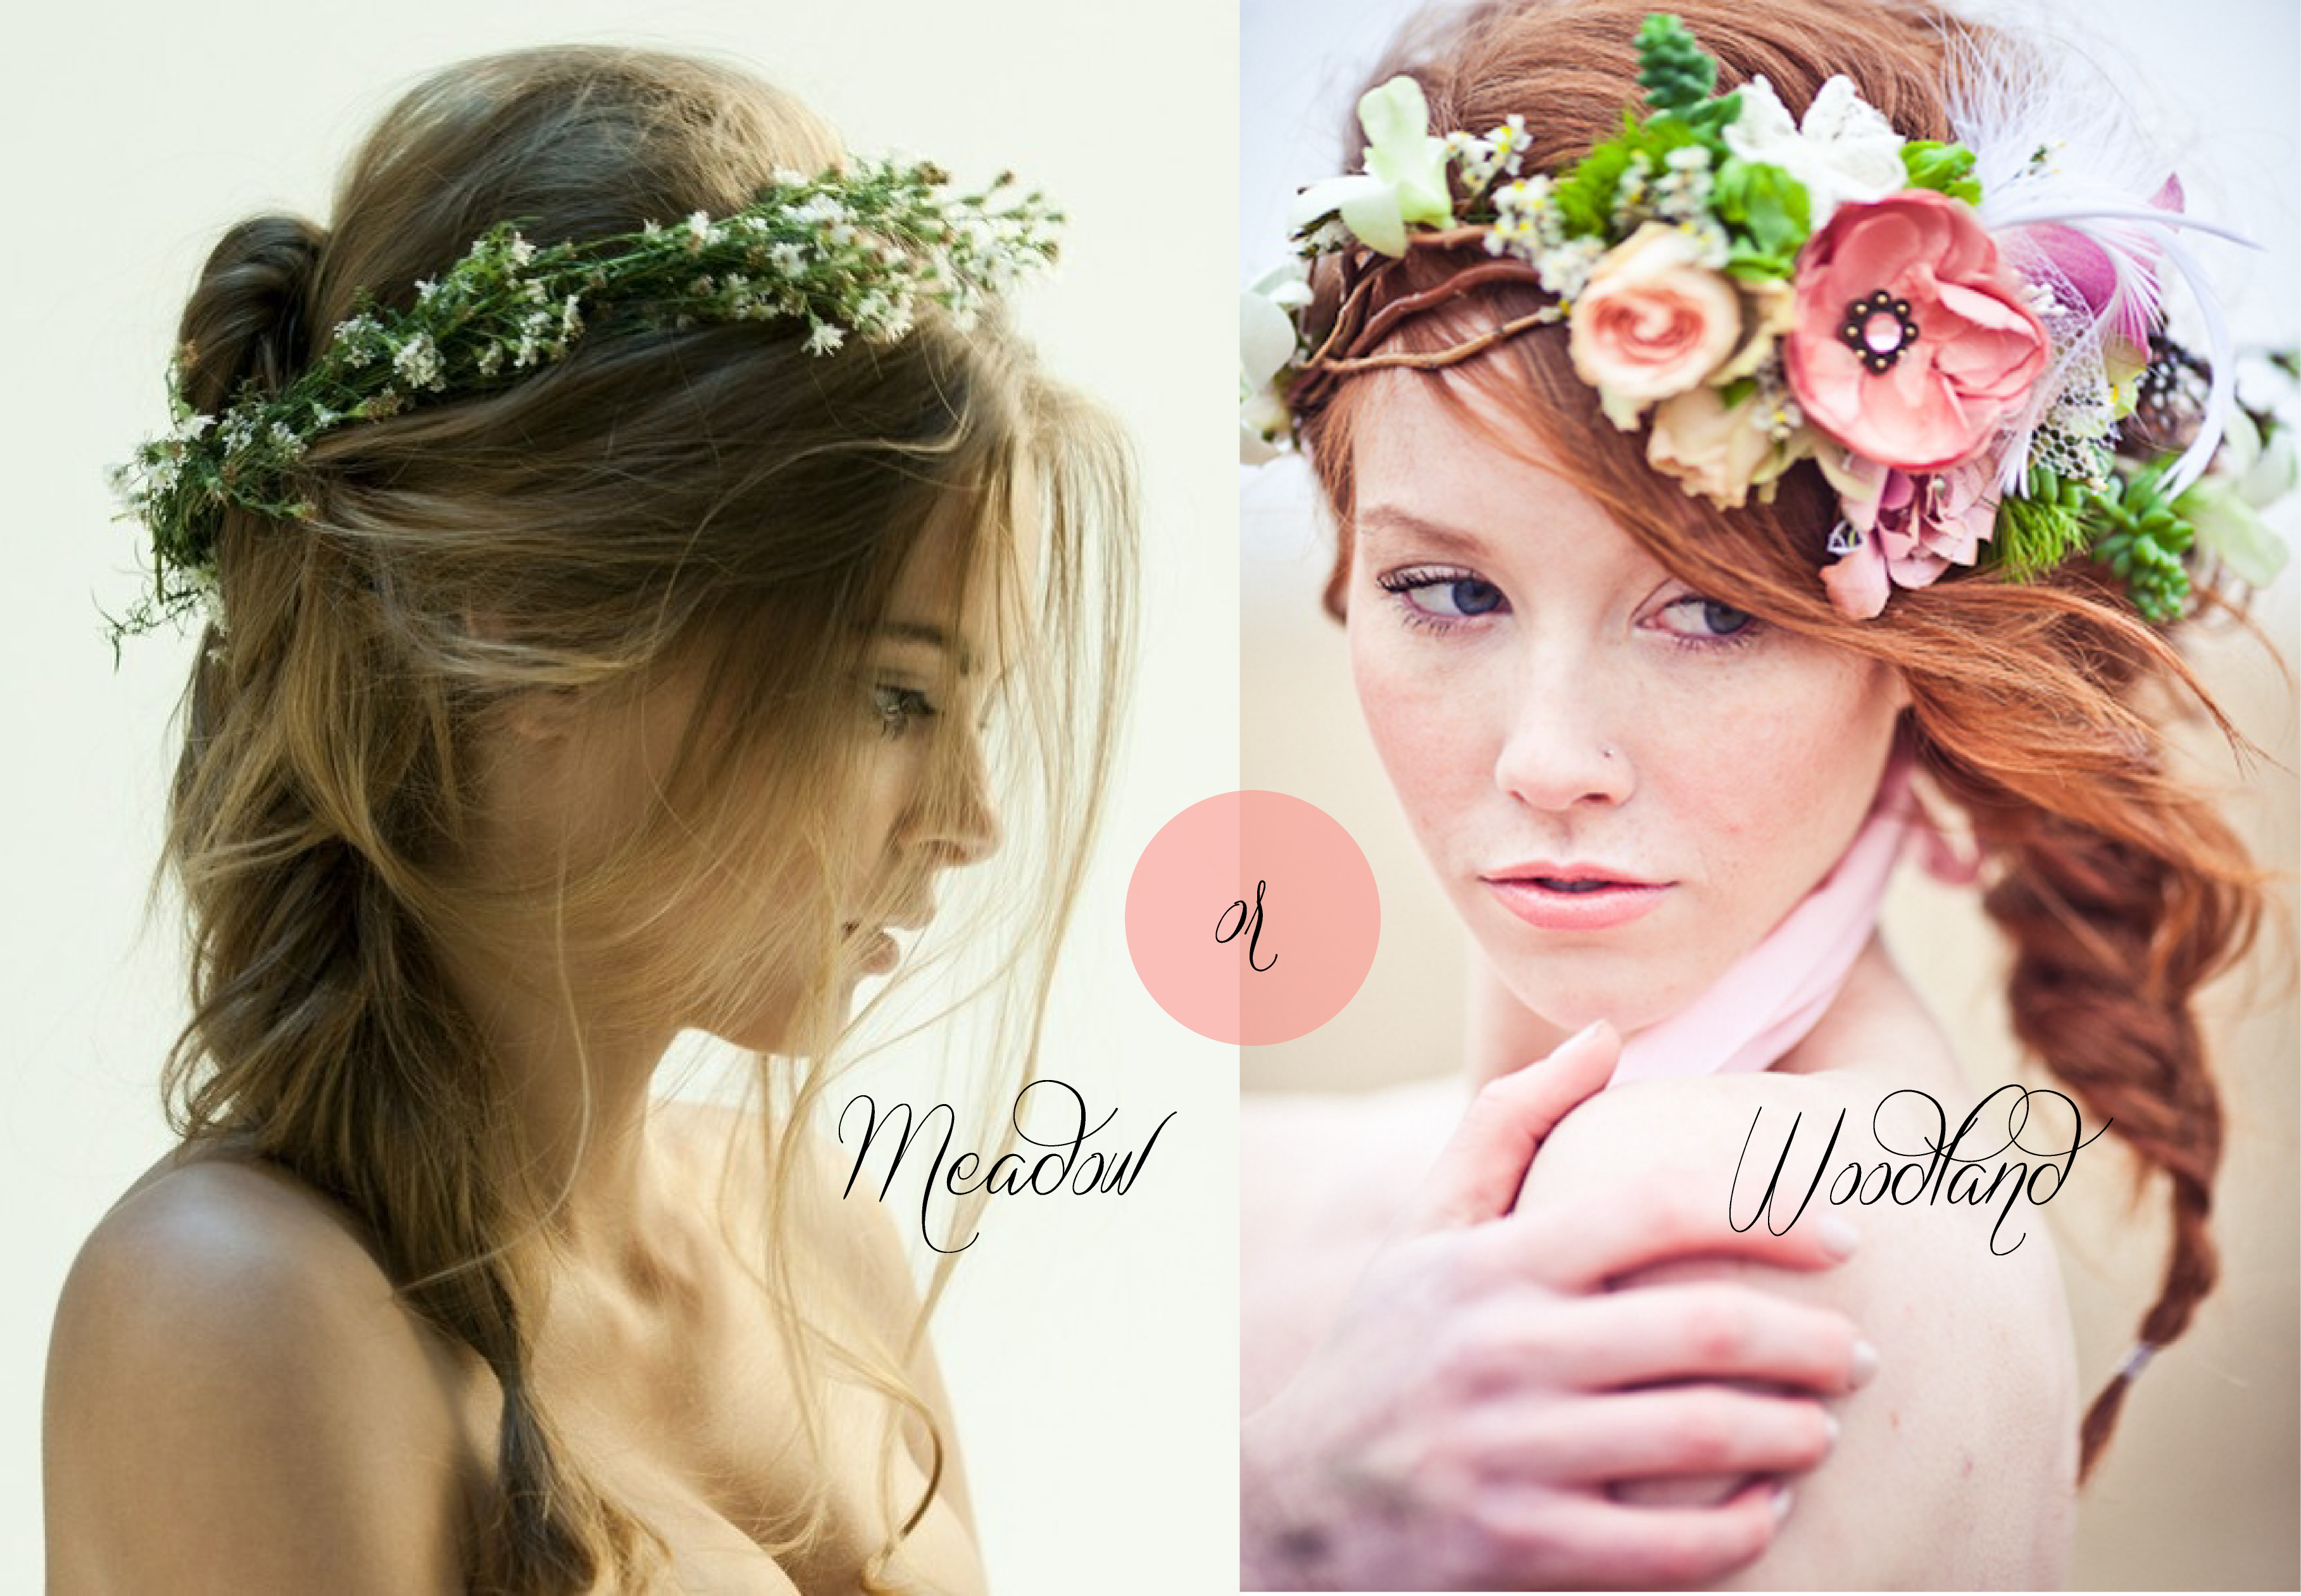 Bridal inspiration floral crowns say yes events floral crown meadow or woodland izmirmasajfo